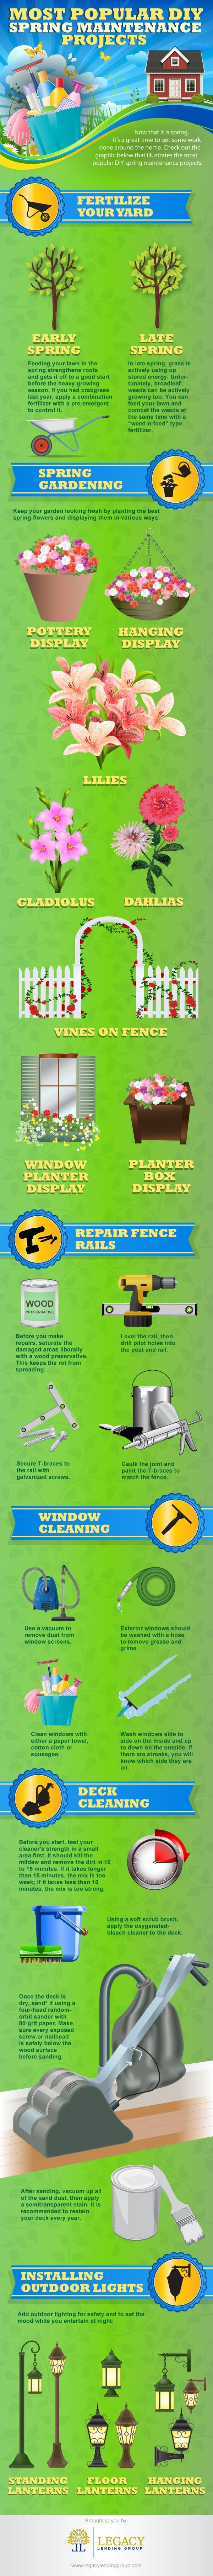 DIY Most Popular Spring Maintenance Projects